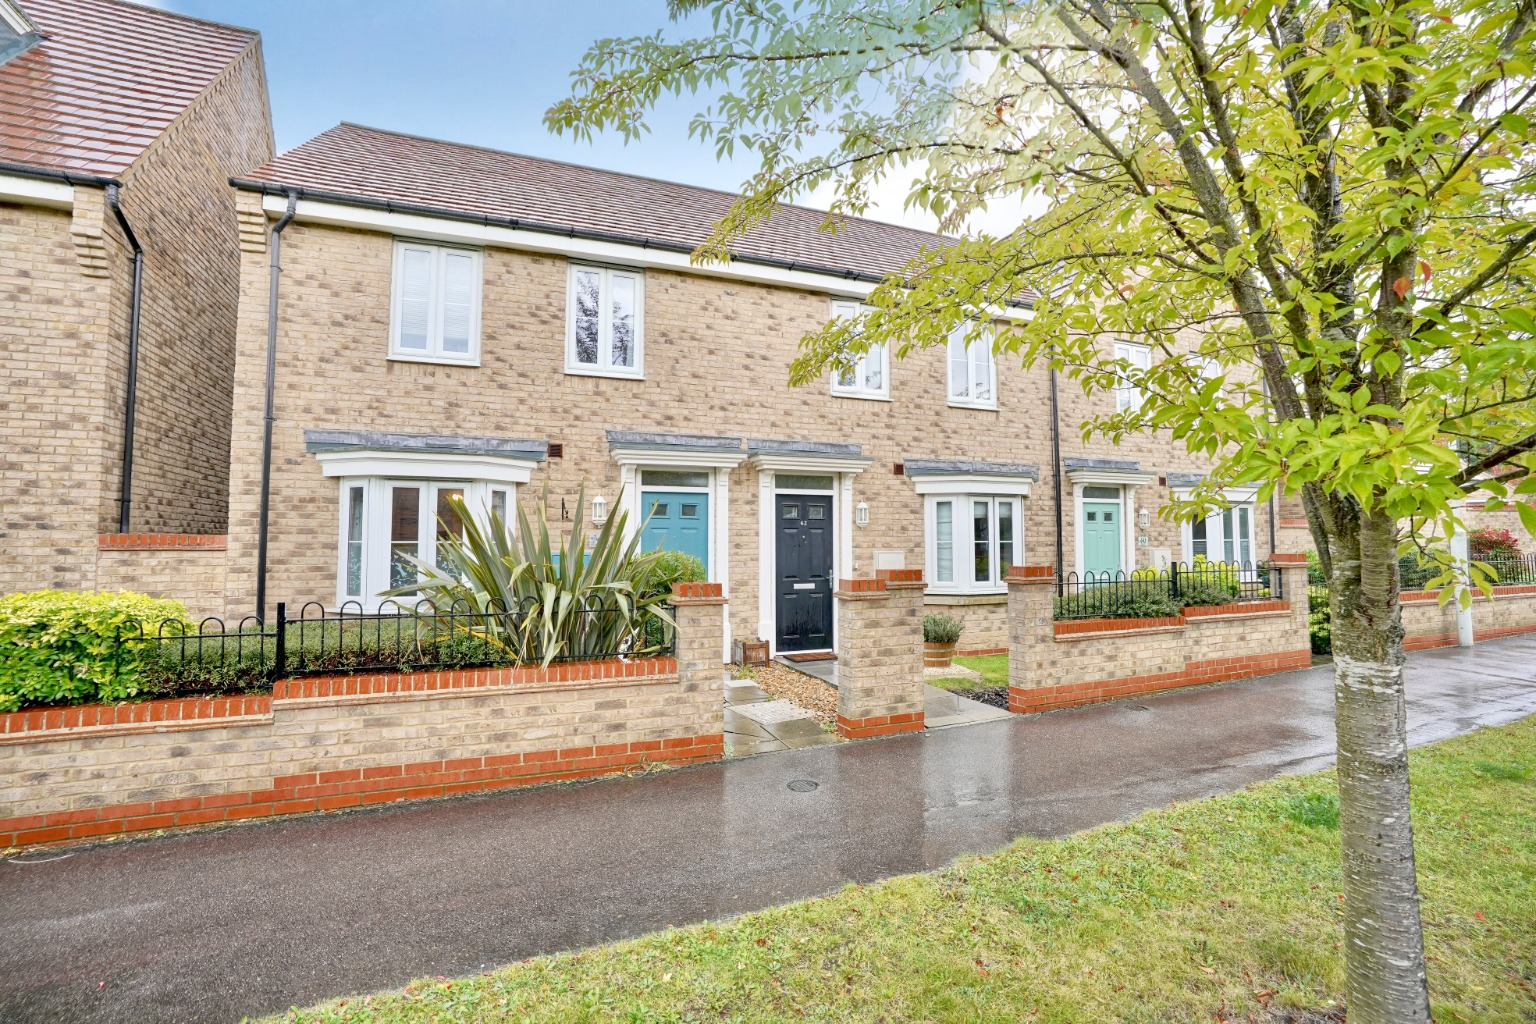 3 bed  for sale in Stone Hill, Cambridgeshire, PE19